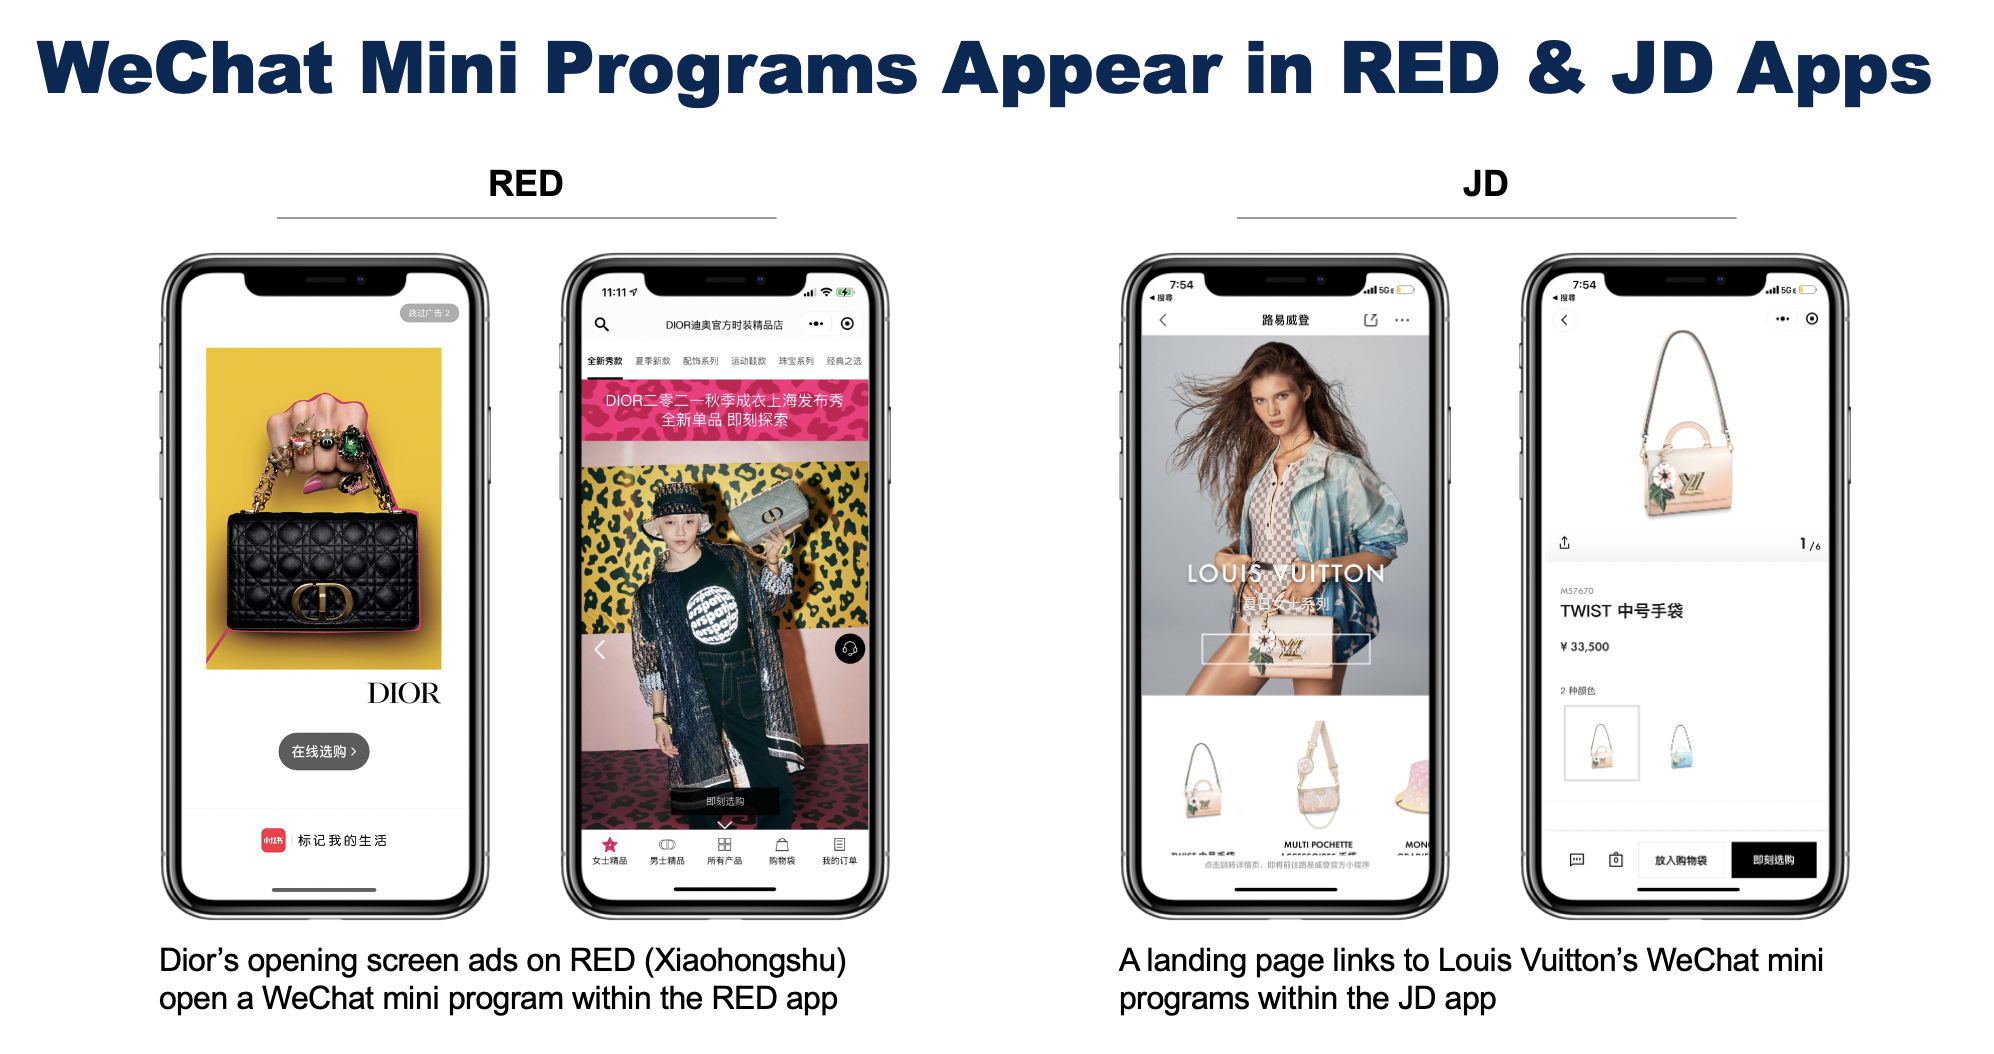 Dior and Louis Vuitton connect their WeChat mini programs to other walled gardens. Mini programs run natively in the RED and JD apps.